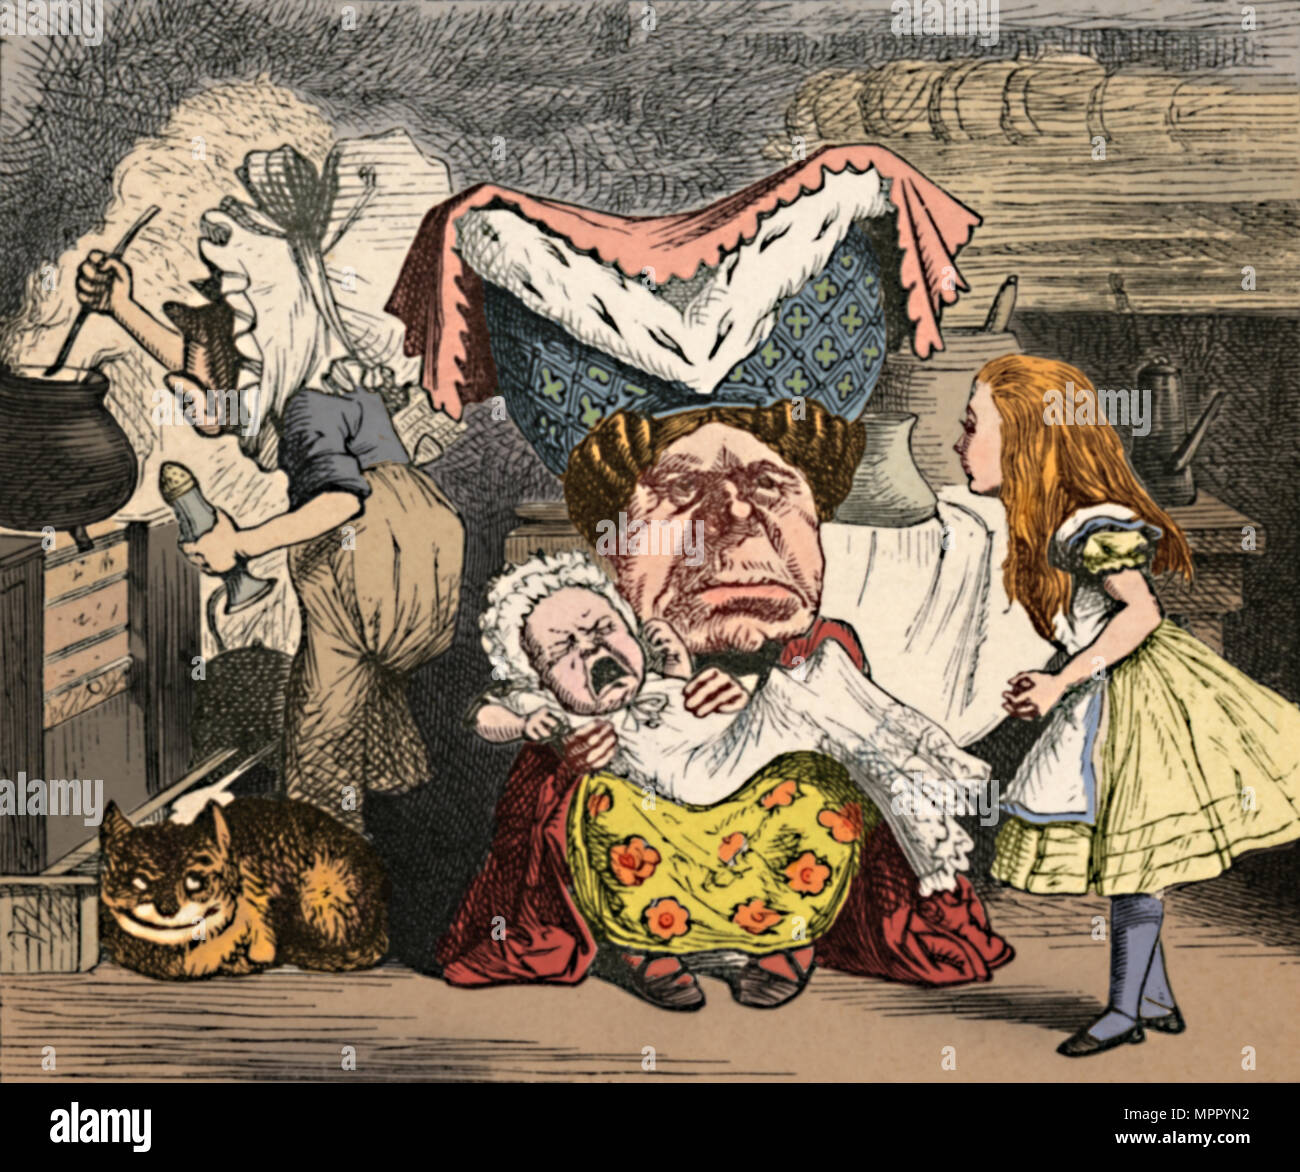 'Alice, the Duchess, and the Baby', 1889. Artist: John Tenniel. - Stock Image